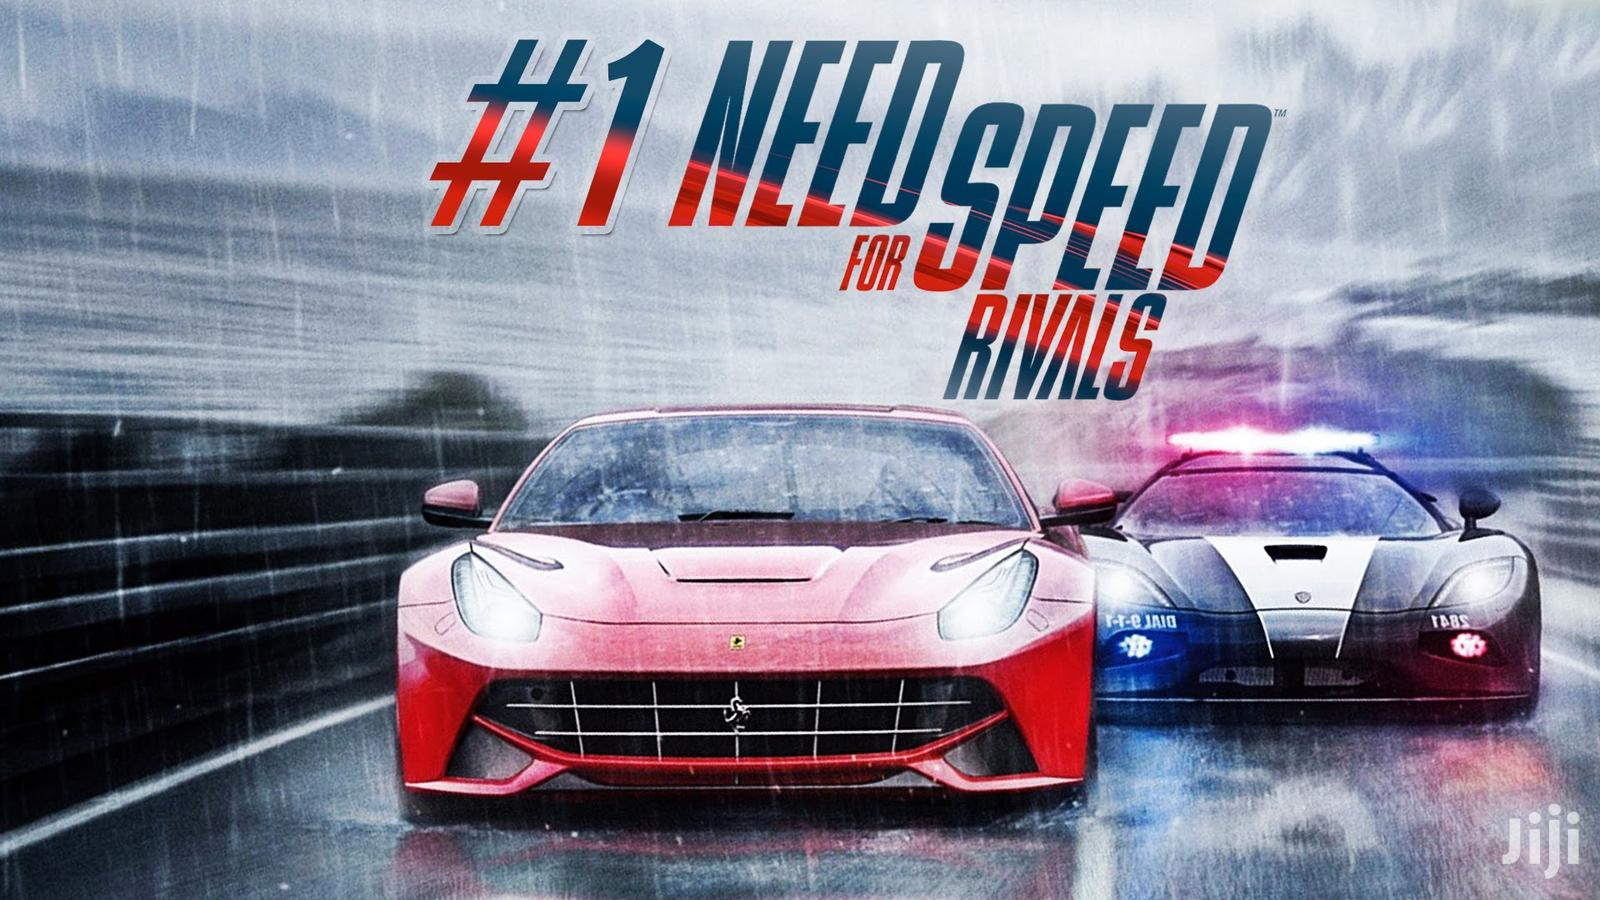 Archive: NFS Rivals, Need For Speed Games Series